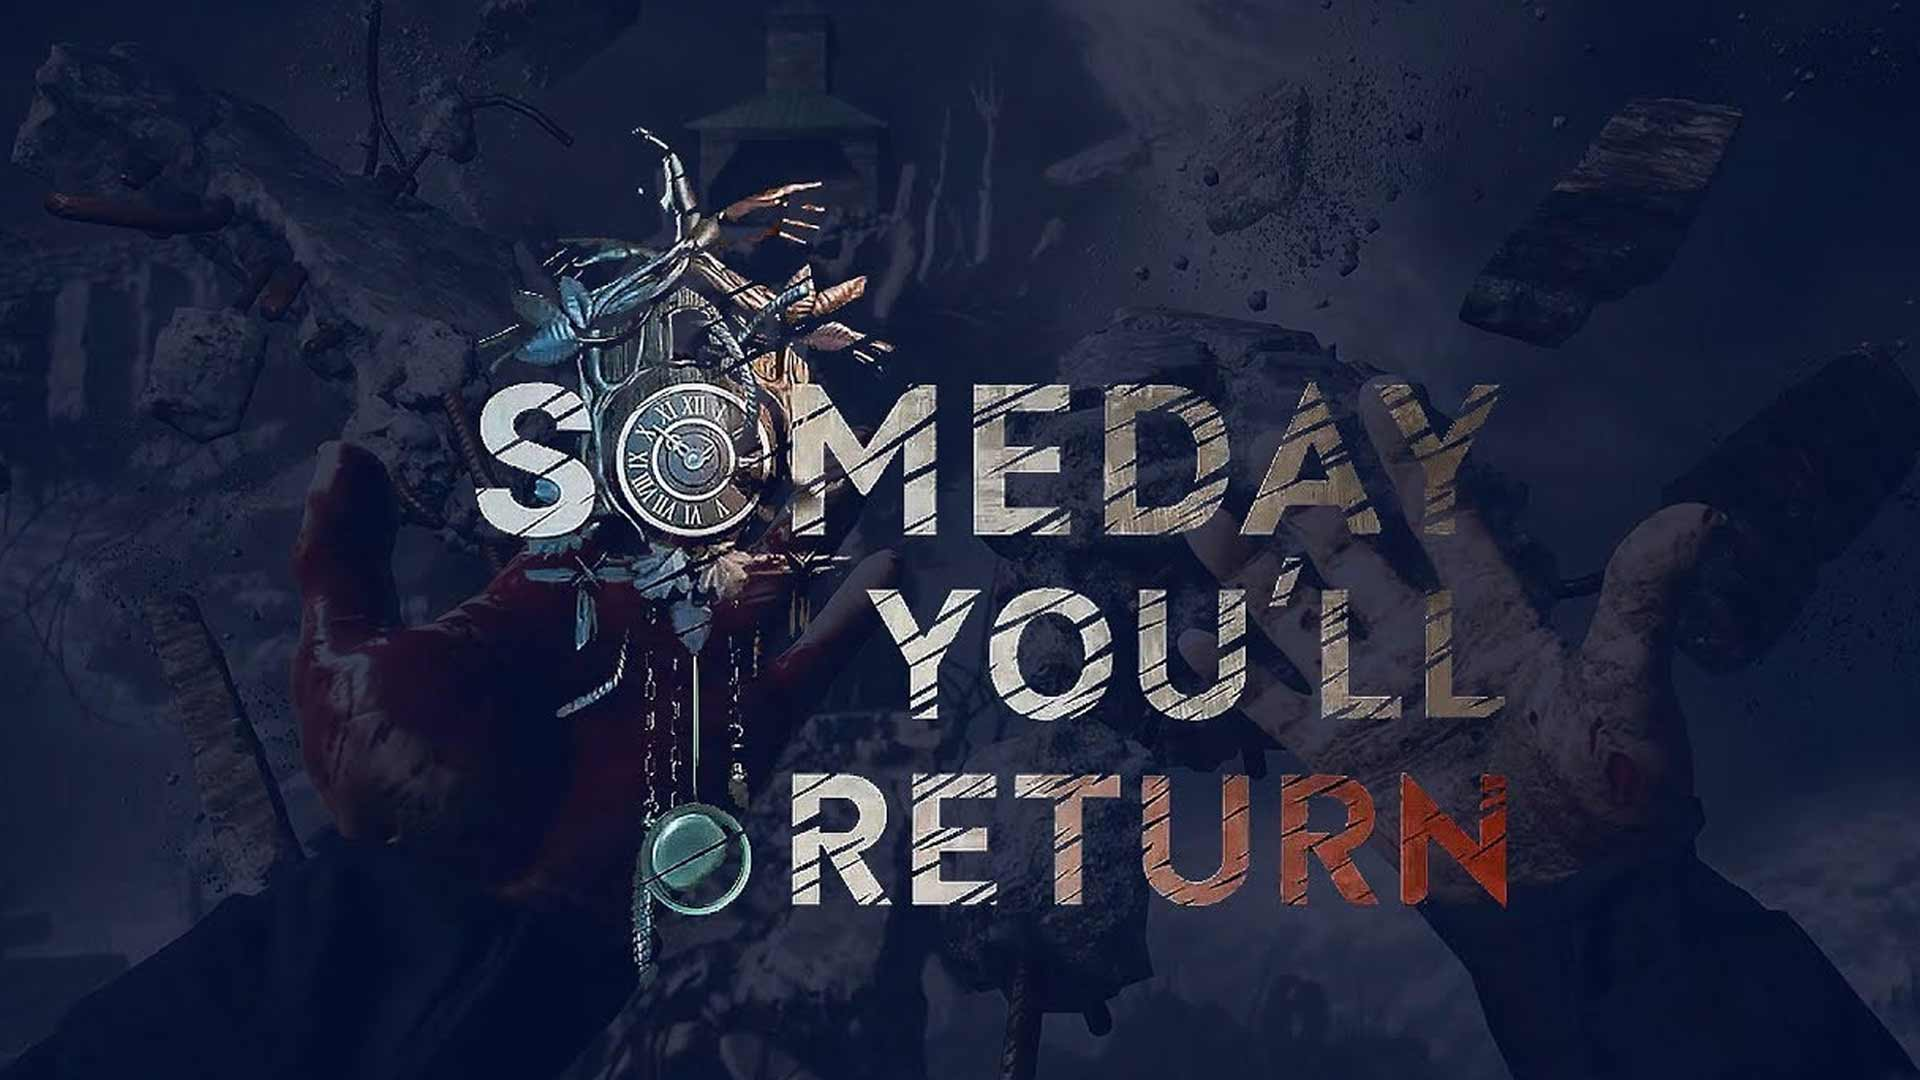 Someday You Return